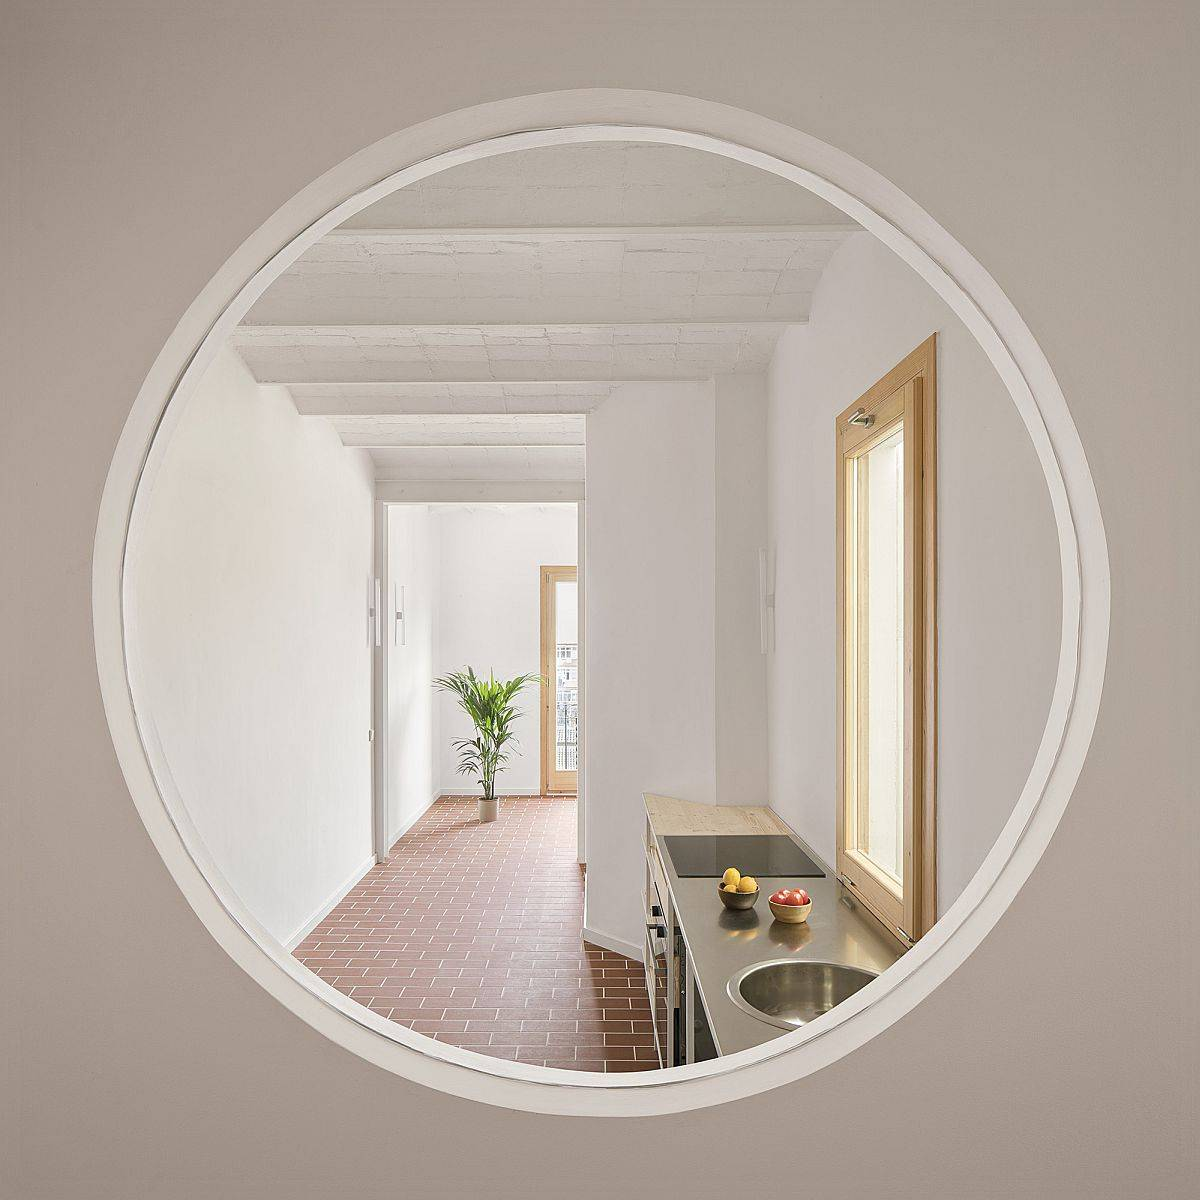 Circular-window-connects-the-kitchn-and-the-living-area-with-the-dining-space-or-secondary-room-42282